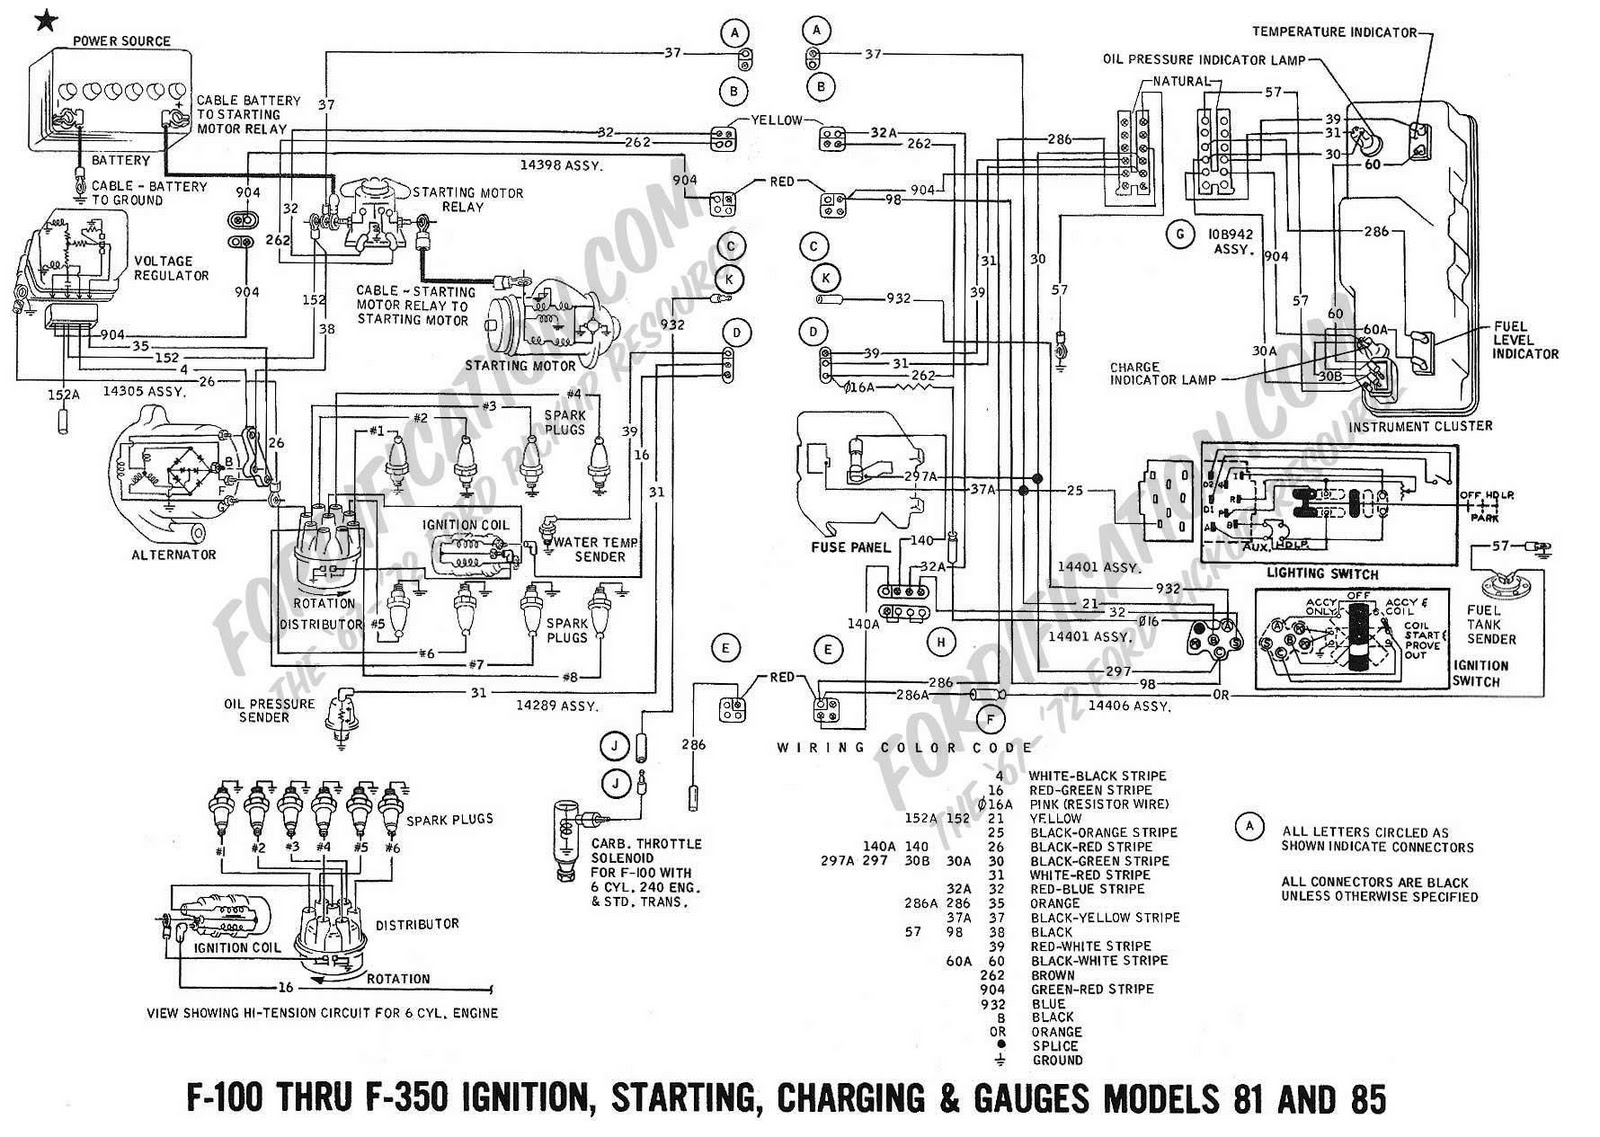 small resolution of 4 1 haul system diagram wiring schematic wiring diagram schematics boat alternator diagram advantage boats wiring diagram